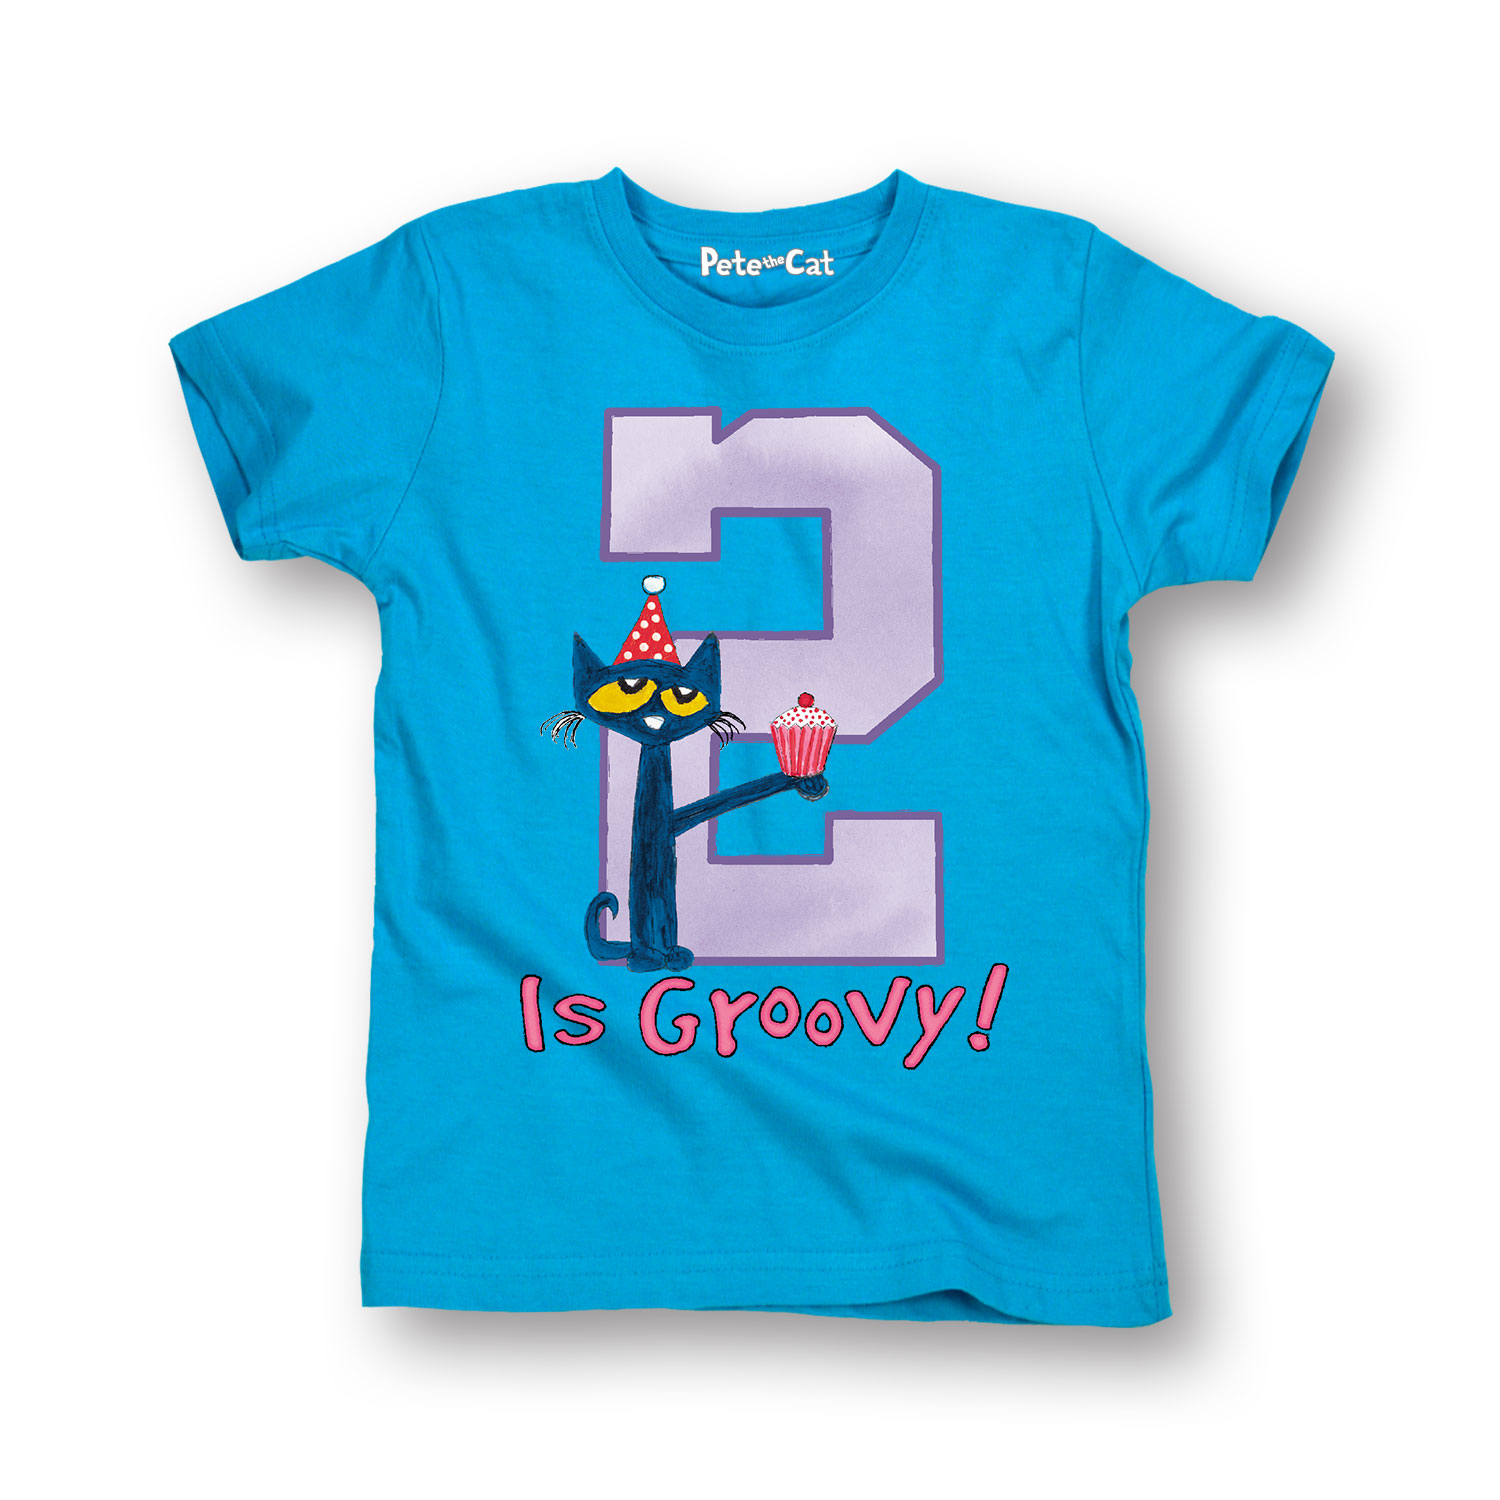 Pete The Cat 2Nd Birthday Girls - Toddler Short Sleeve Tee